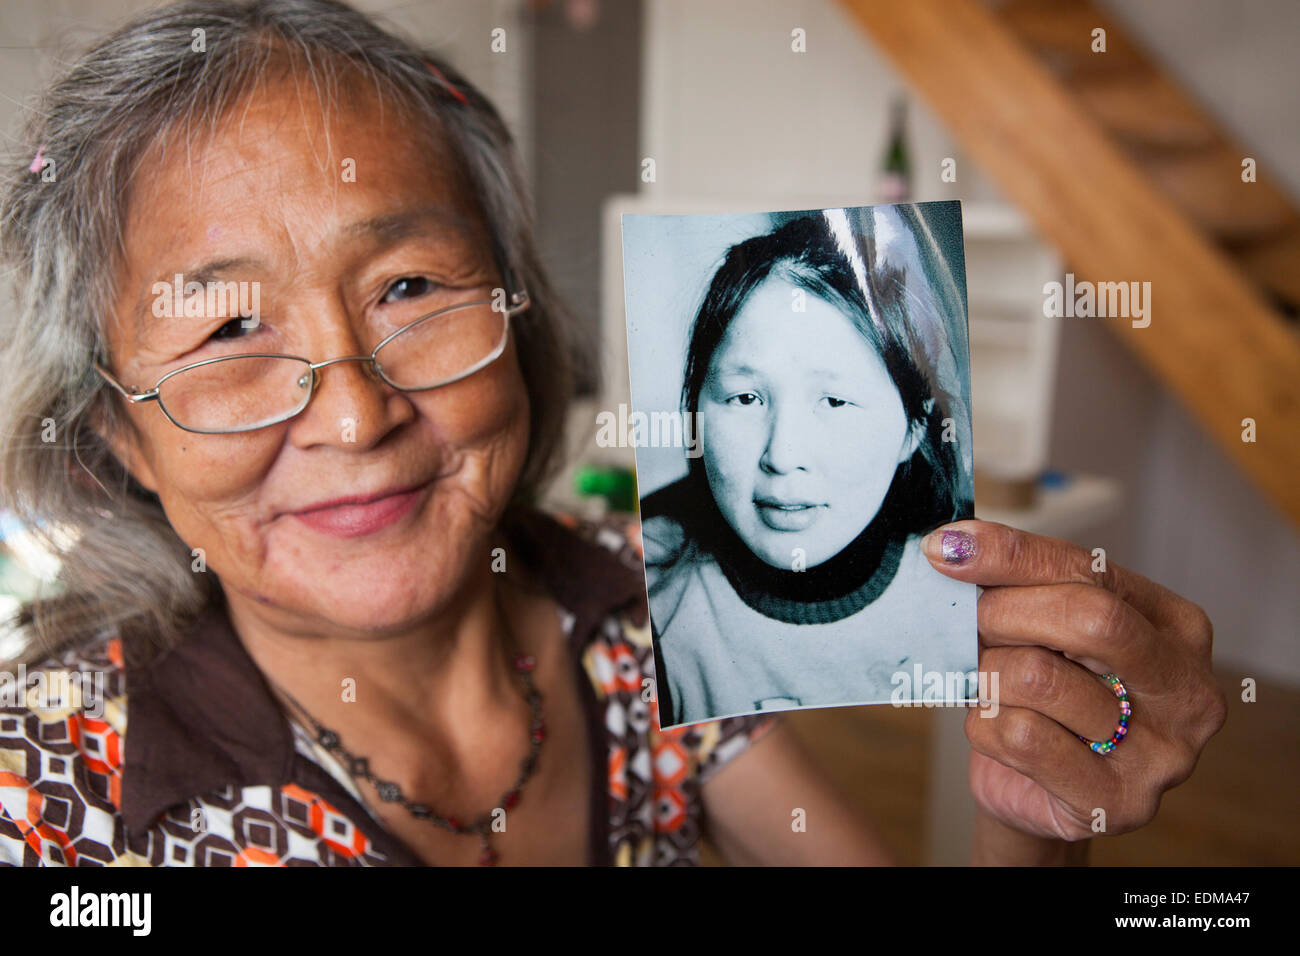 Local woman in Greenland holding up a portrait of herself. - Stock Image